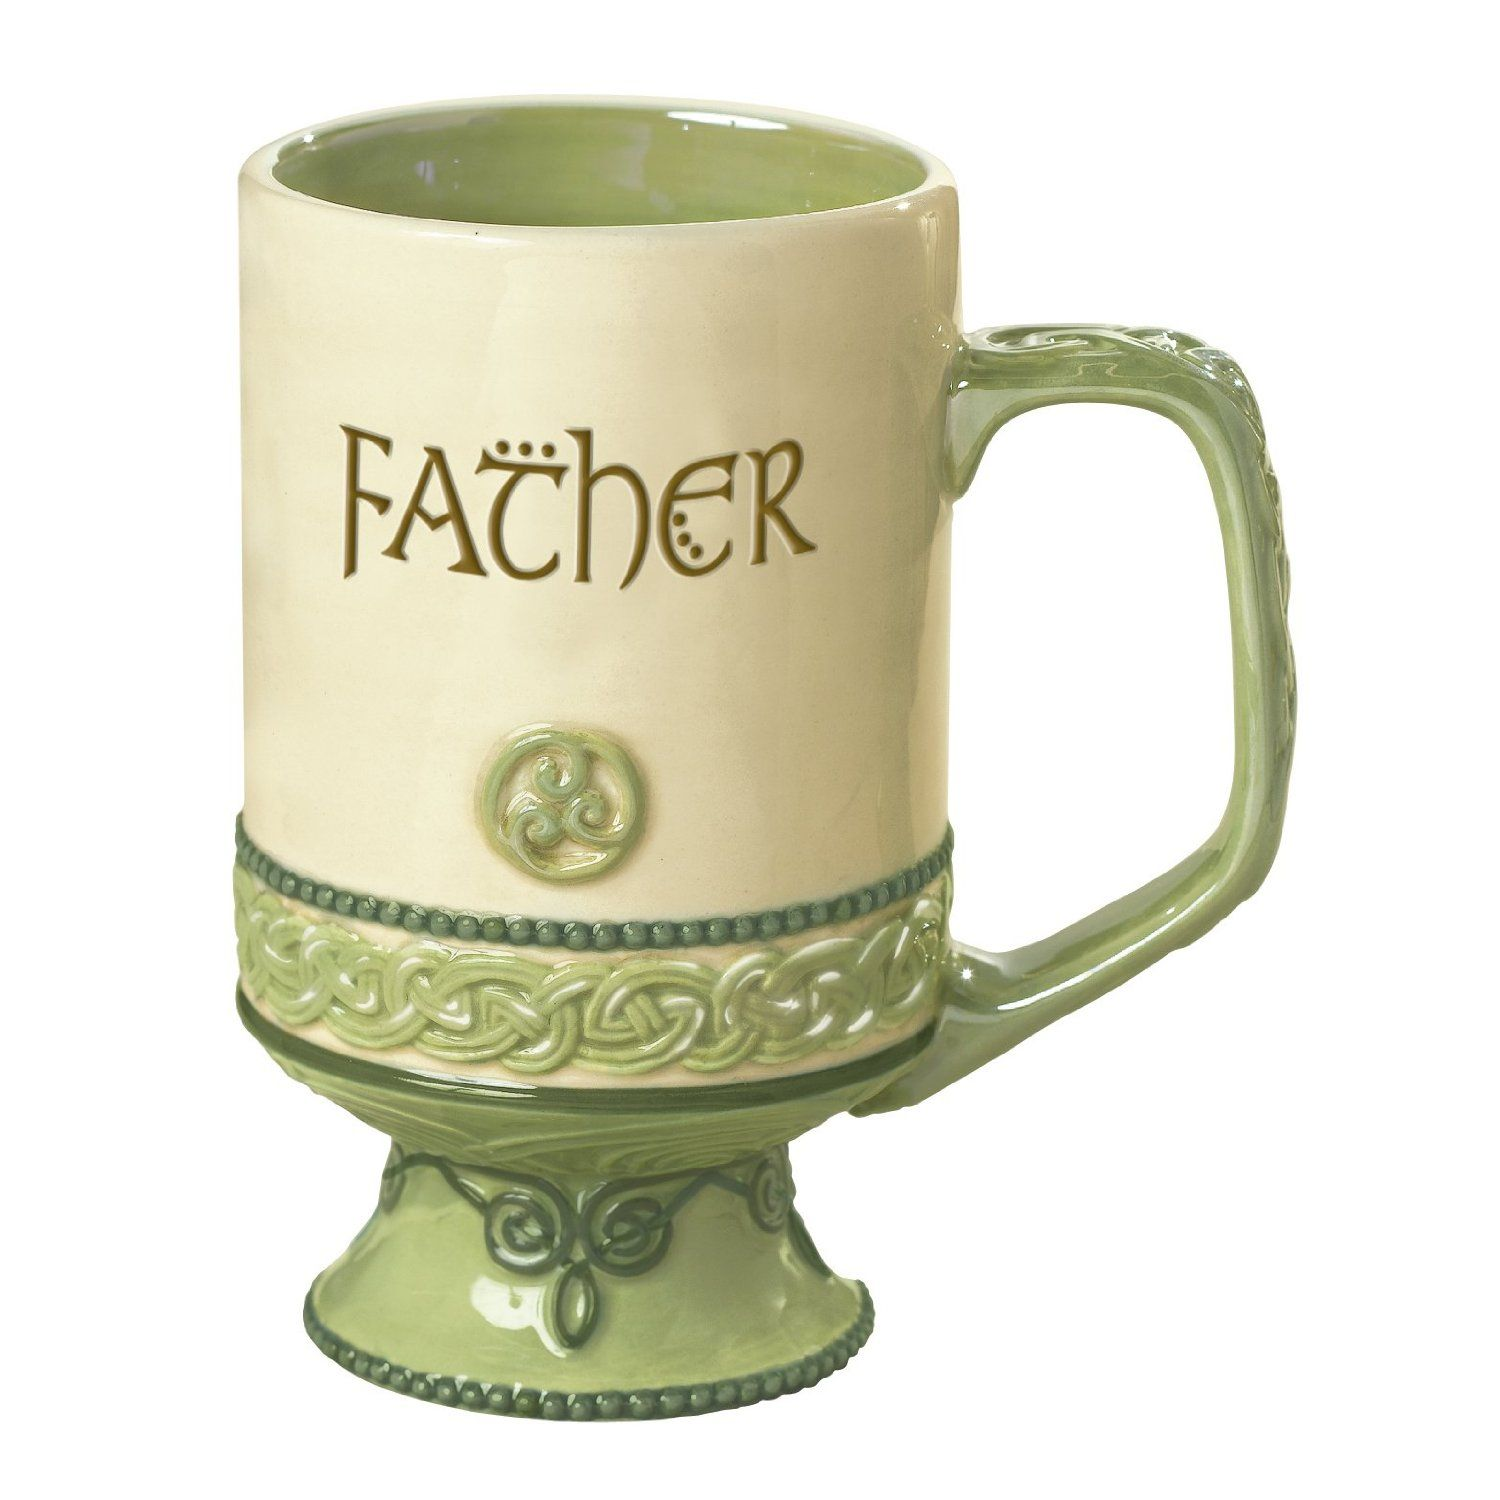 Grasslands Road Celtic 12 Ounce Father Coffee Mug With May The Road